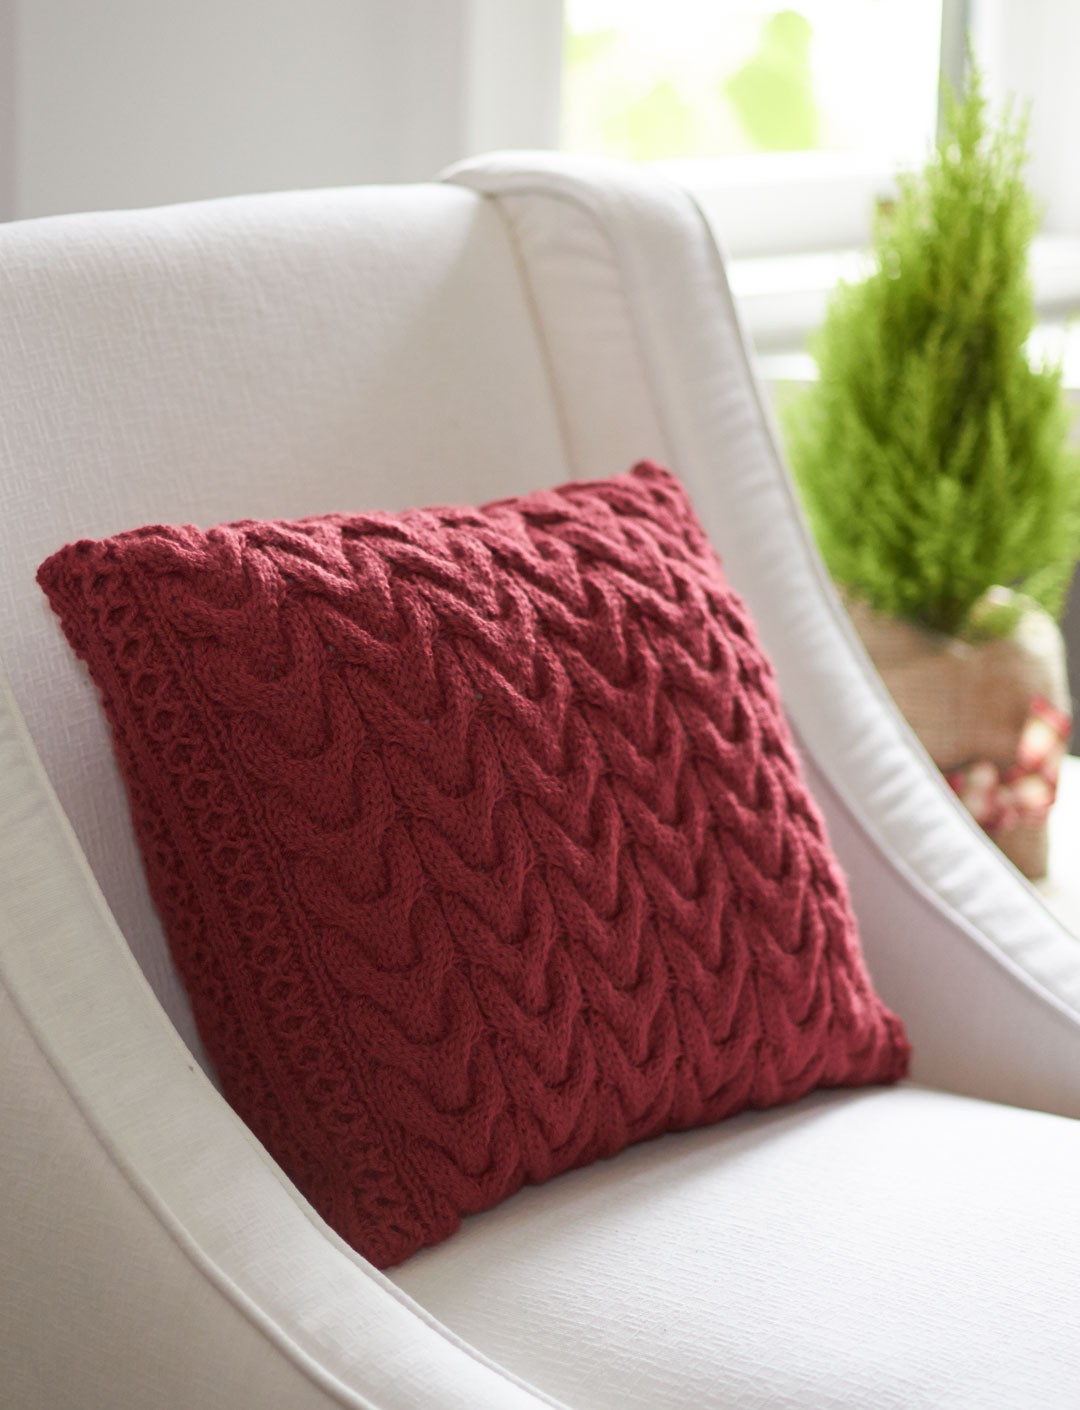 Free Knitting Patterns For Cushions In Cable Knit : Patons Christmas Cables Pillow, Knit Pattern Yarnspirations